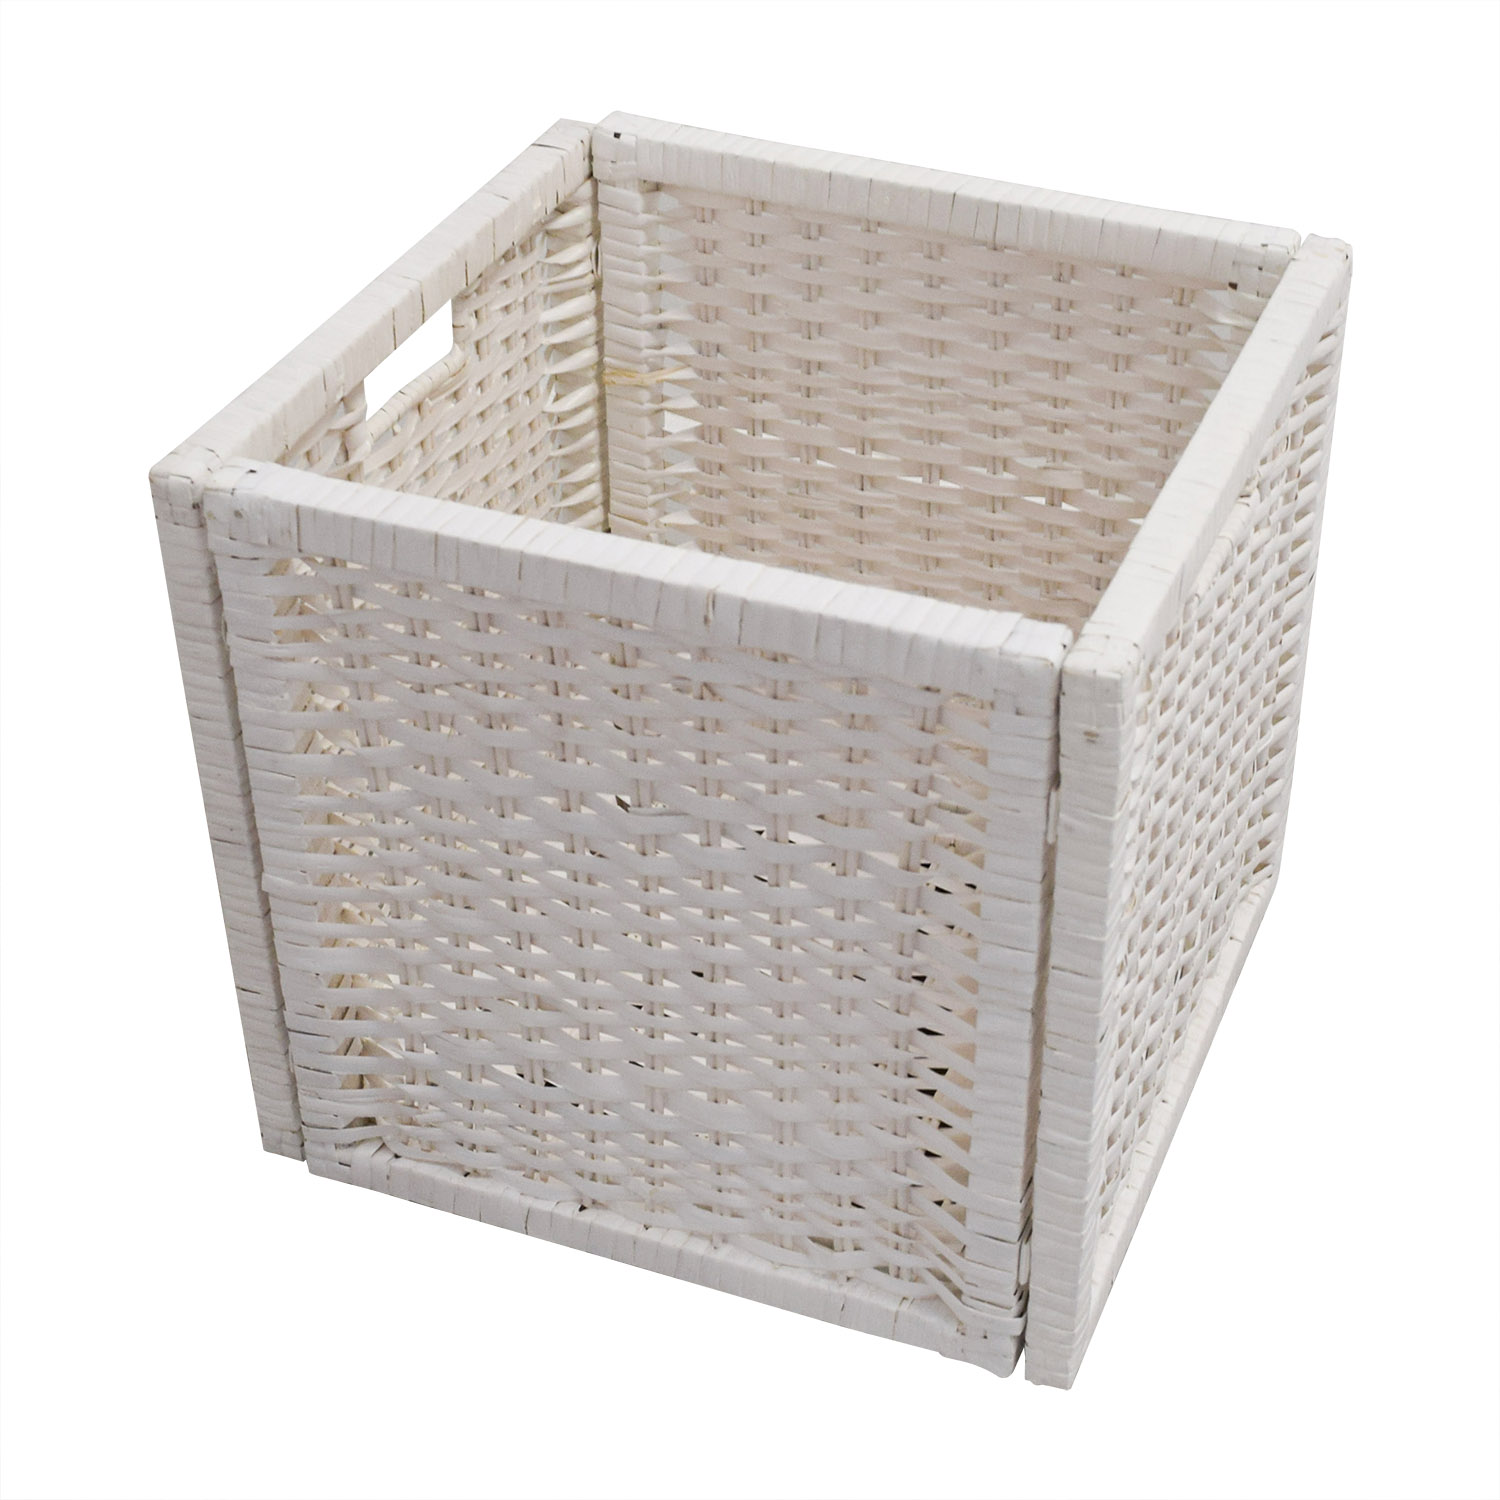 ... IKEA IKEA Shelving Unit With Baskets Storage ...